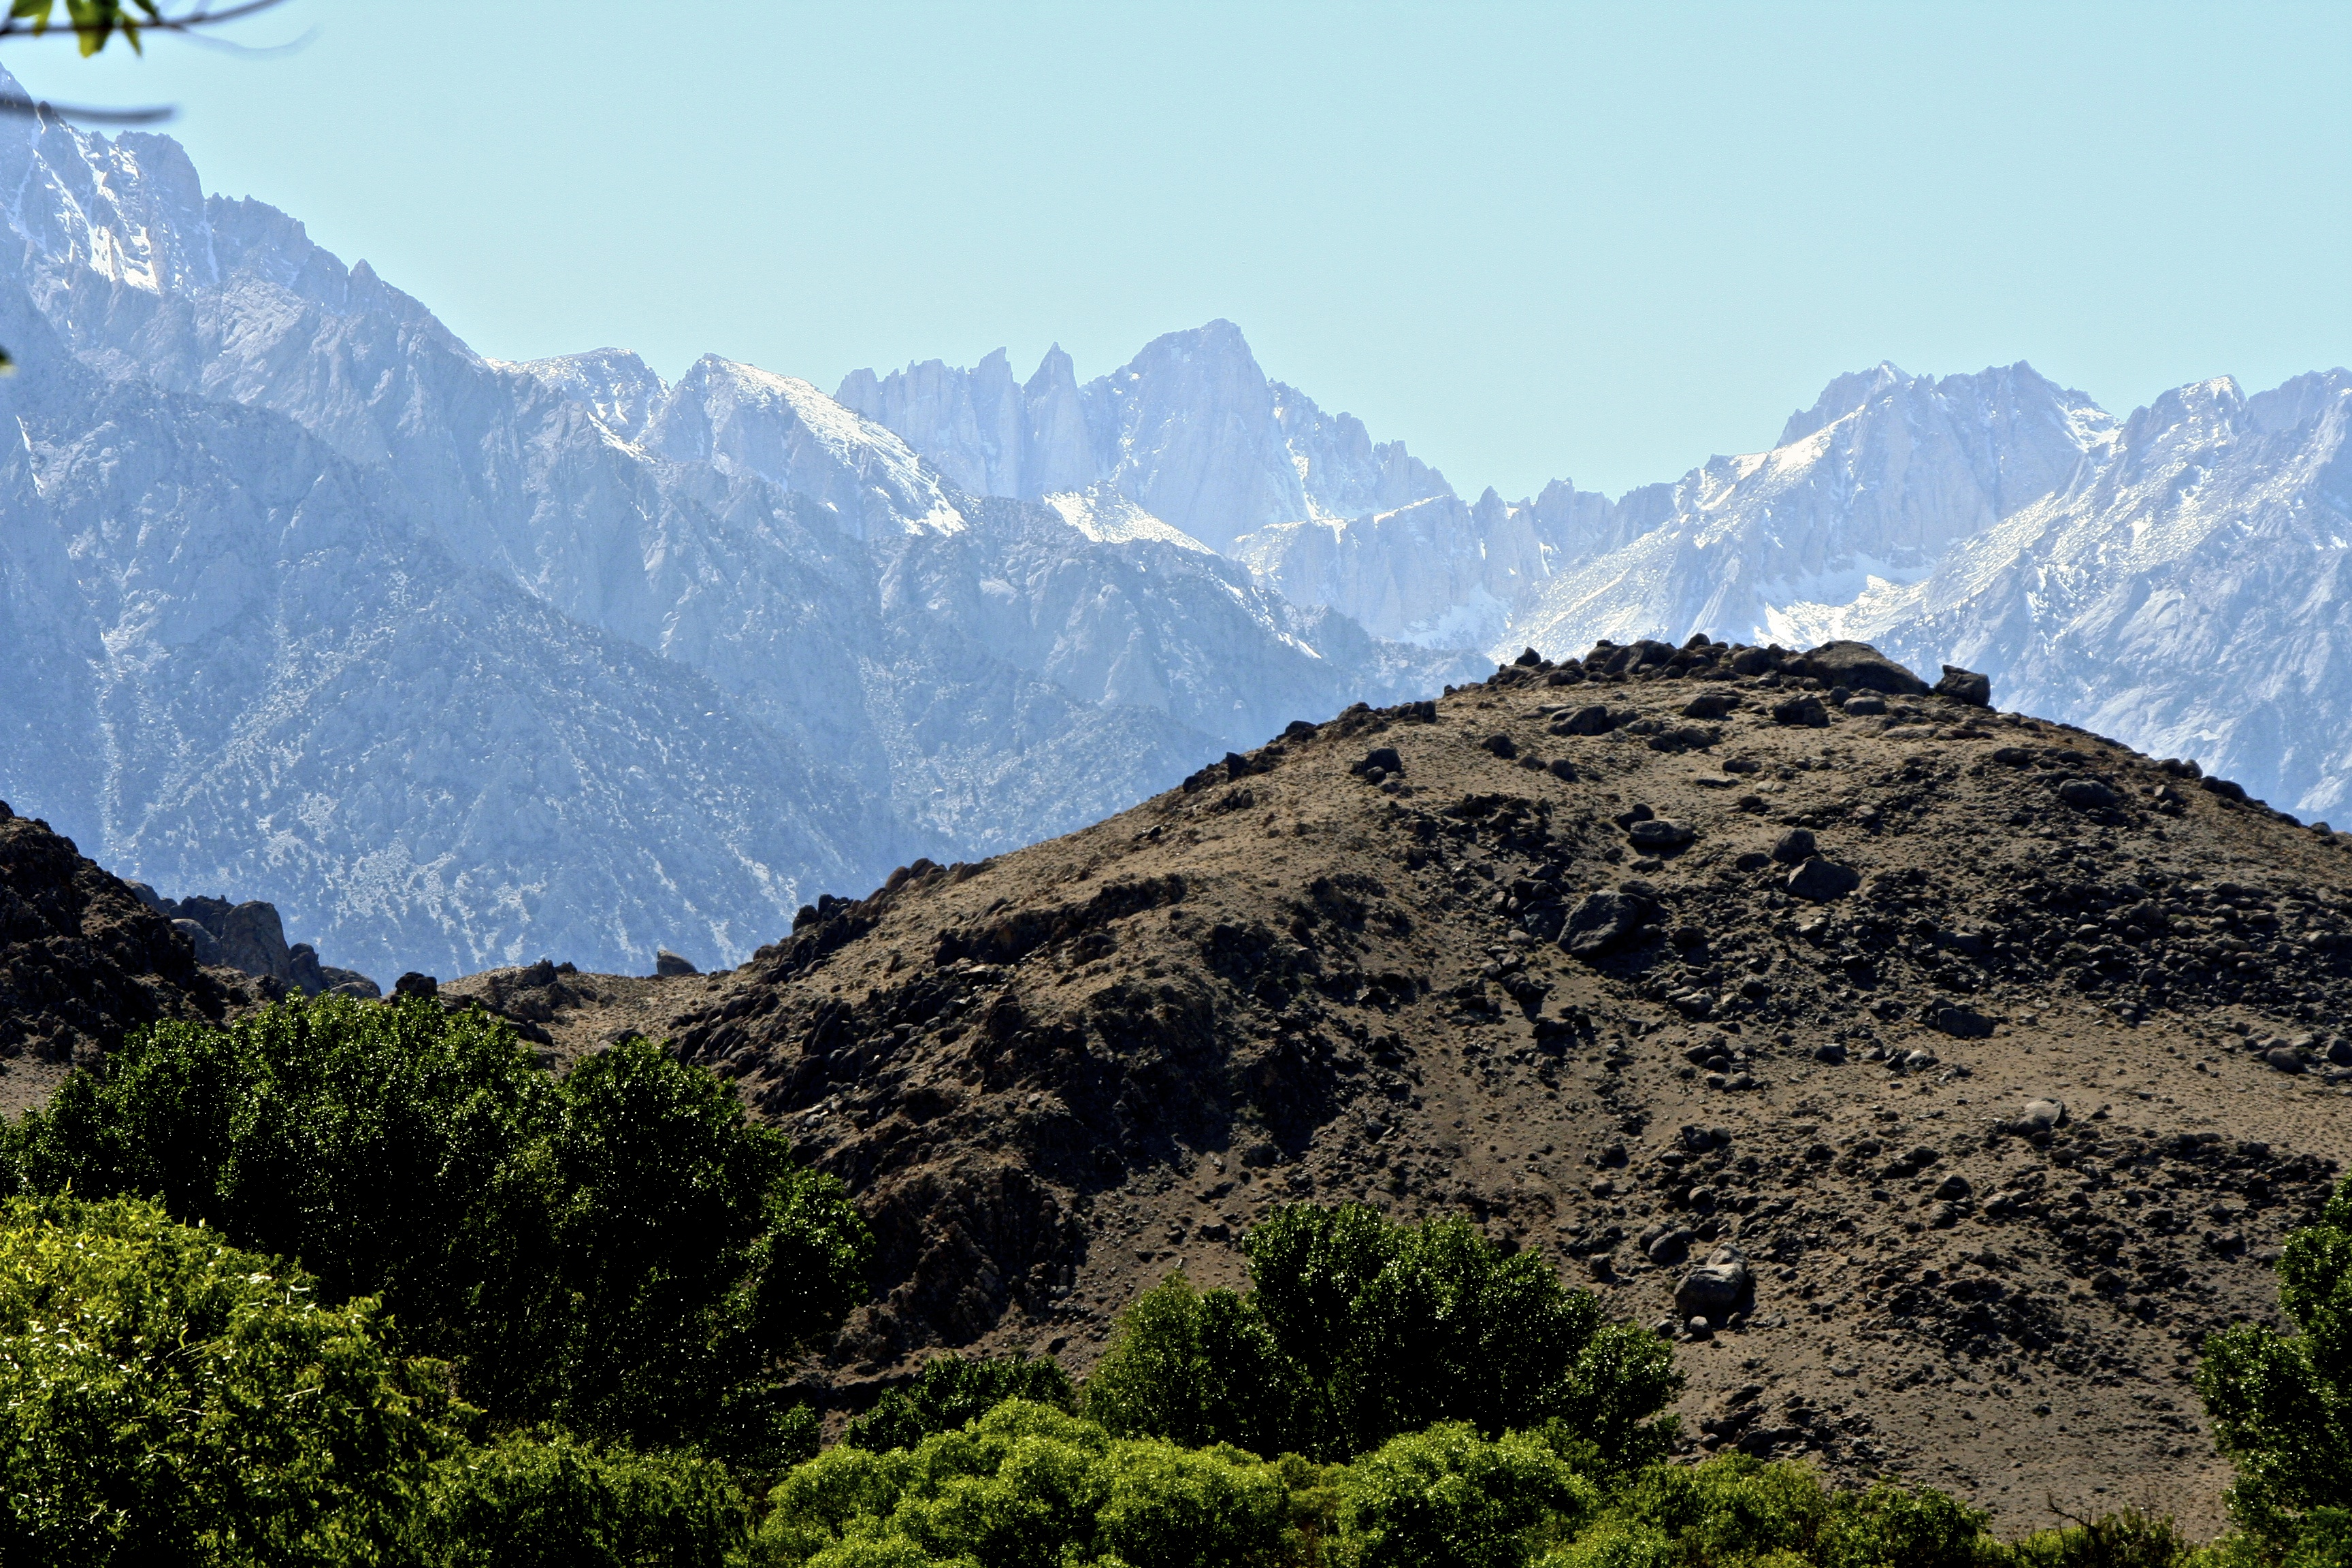 A final view of Mt. Whitney. This one features the Alabama Hills, the site of many early movies featuring the likes of Hop-a-long Cassidy and the Lone Ranger.